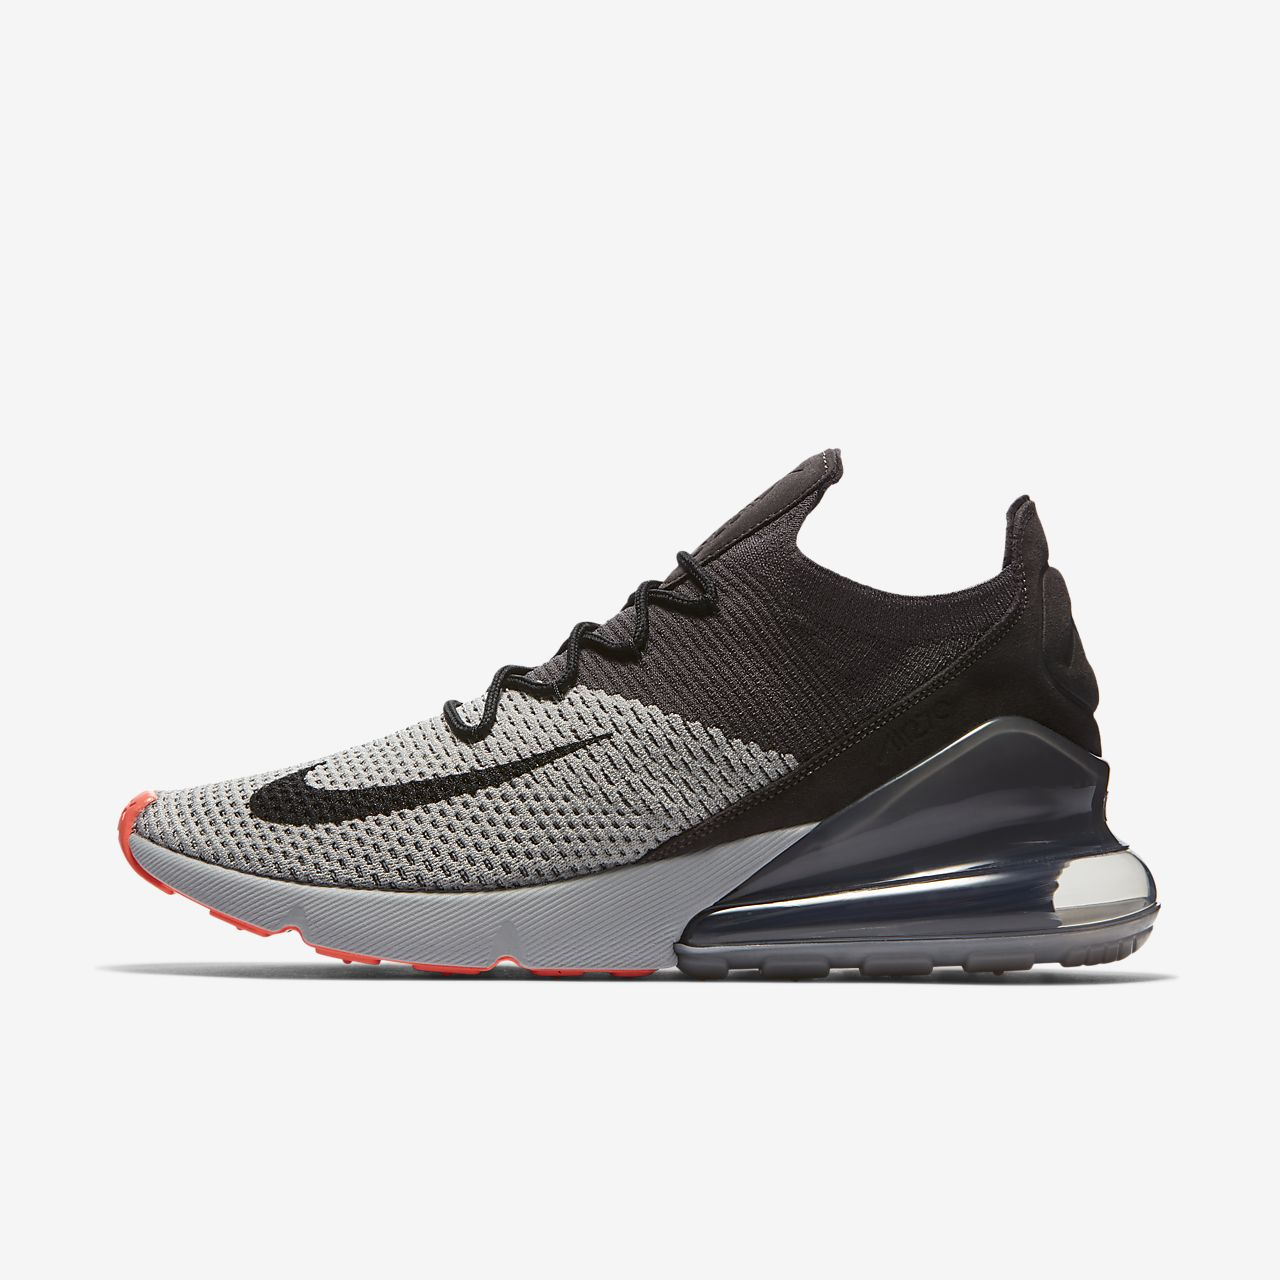 0172234e101 Nike Air Max 270 Flyknit Men s Shoe. Nike.com GB